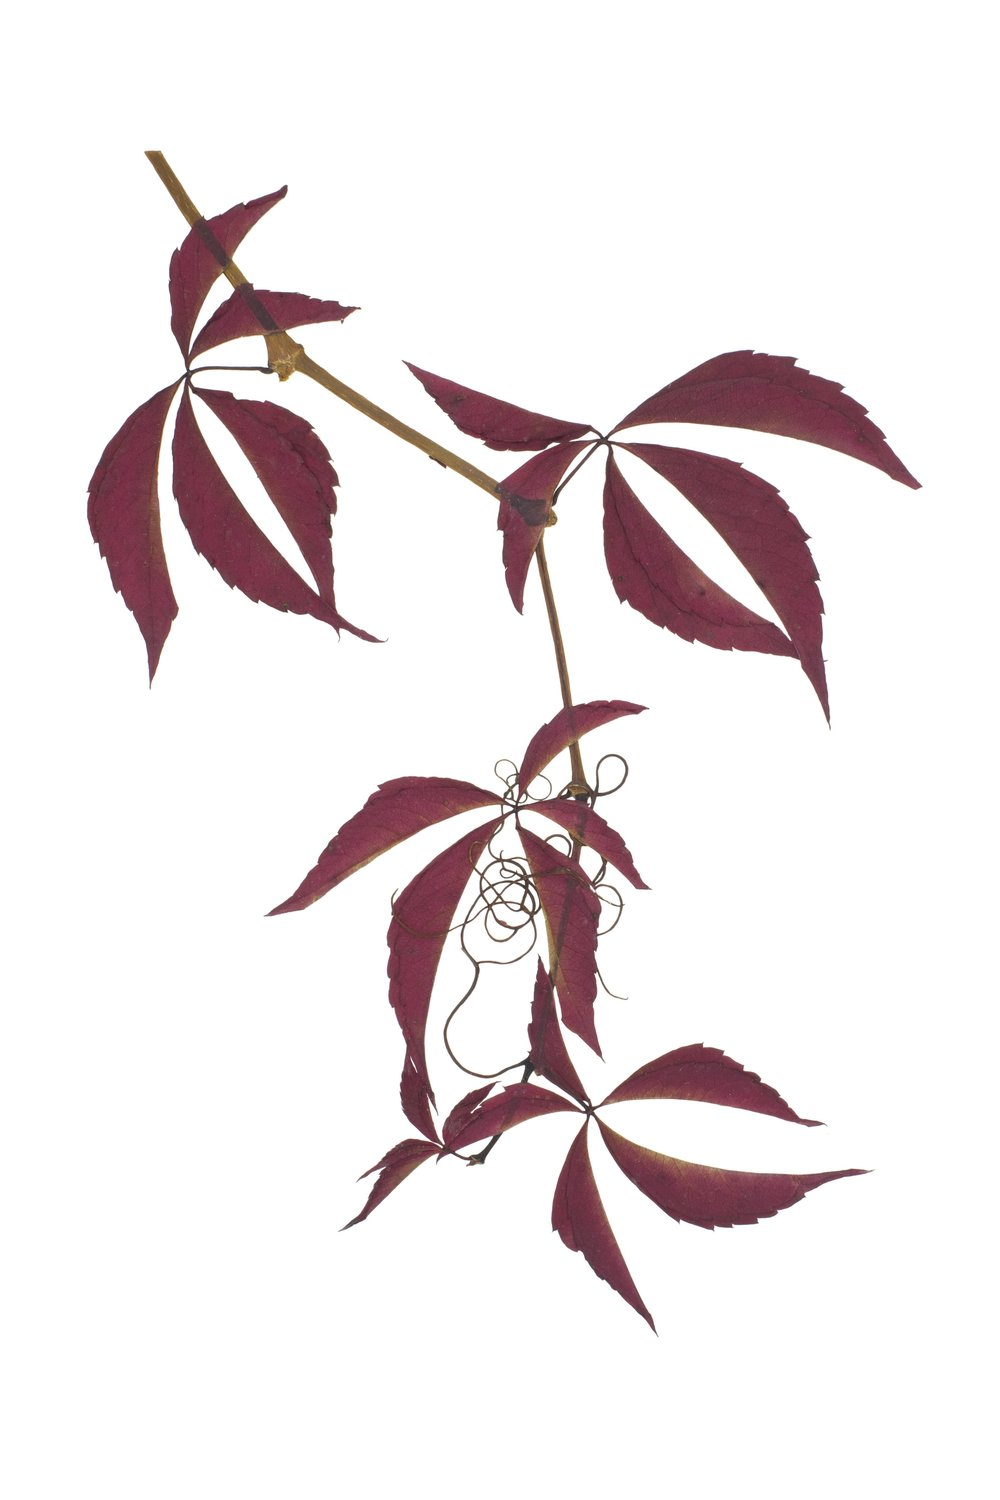 Virginia Creeper / Parthenocissus quinquefolia